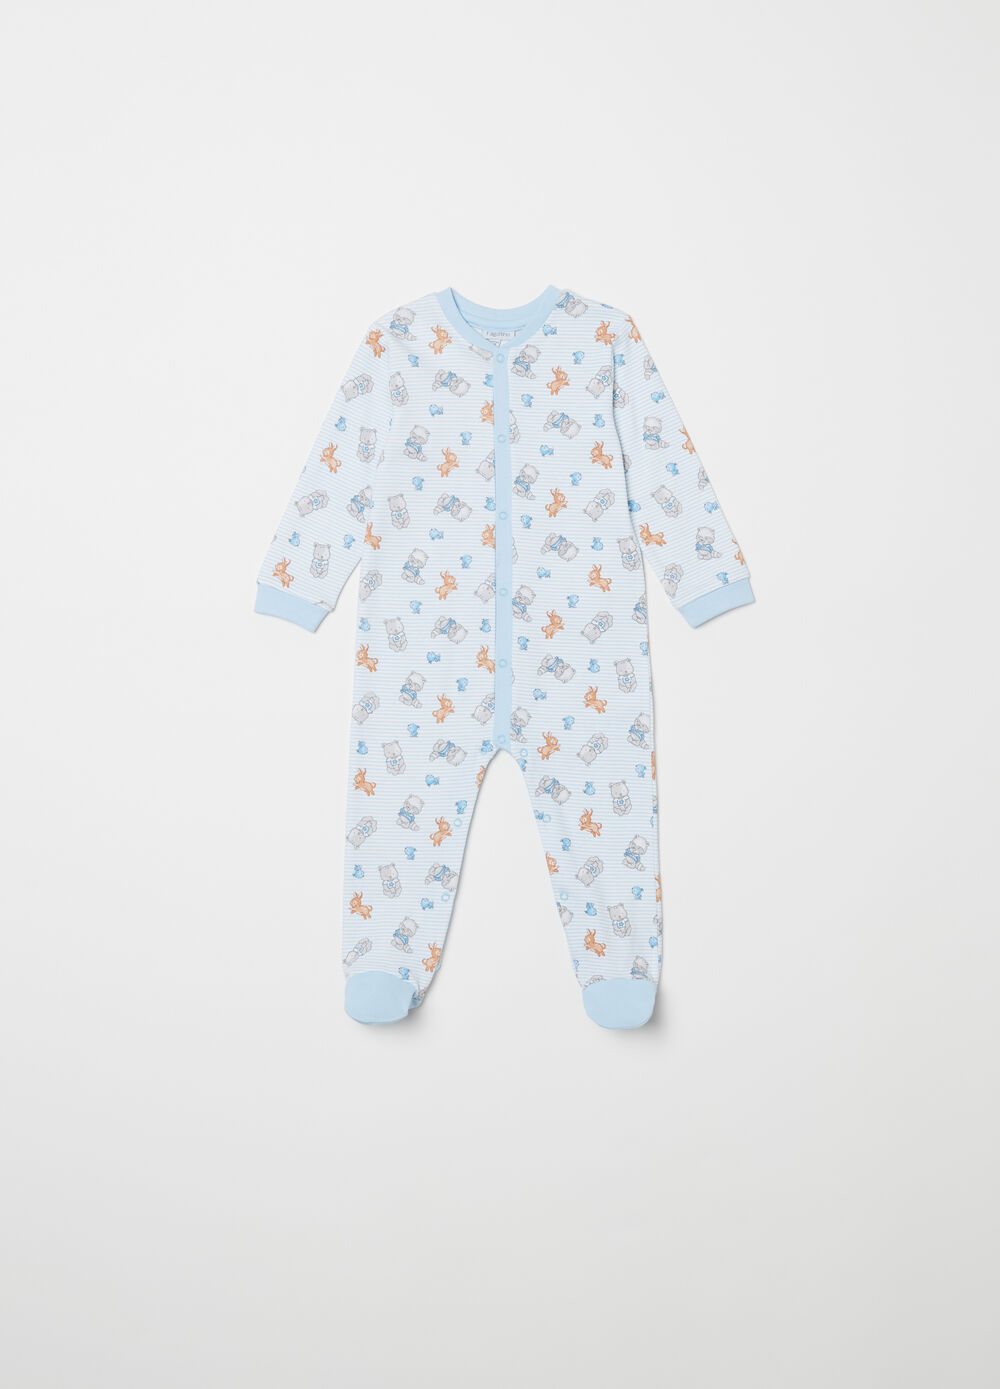 Sleep suit with animal pattern